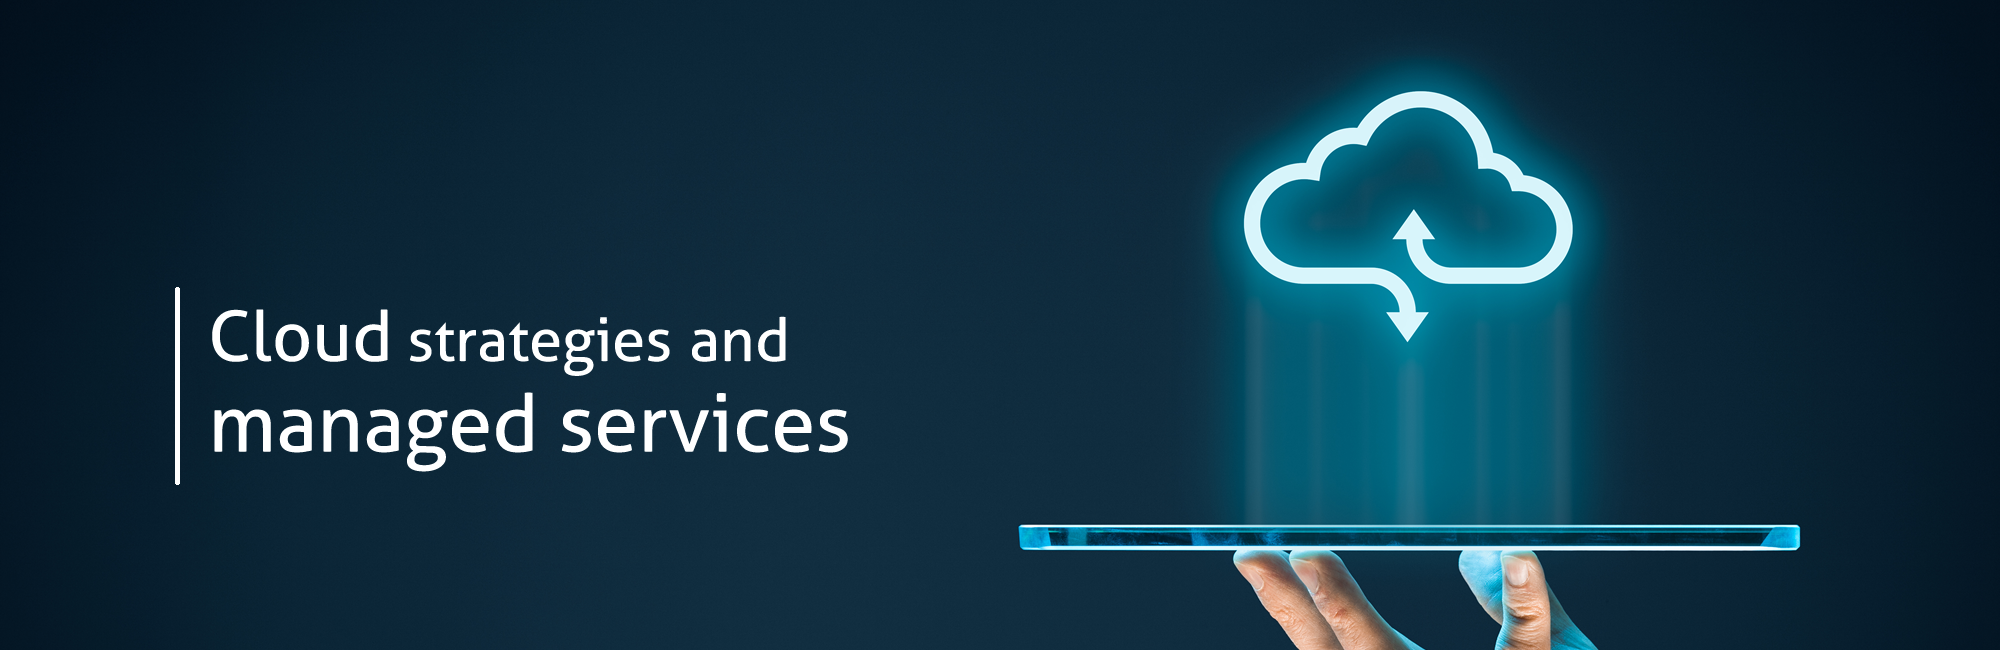 Cloud Strategies and managed services